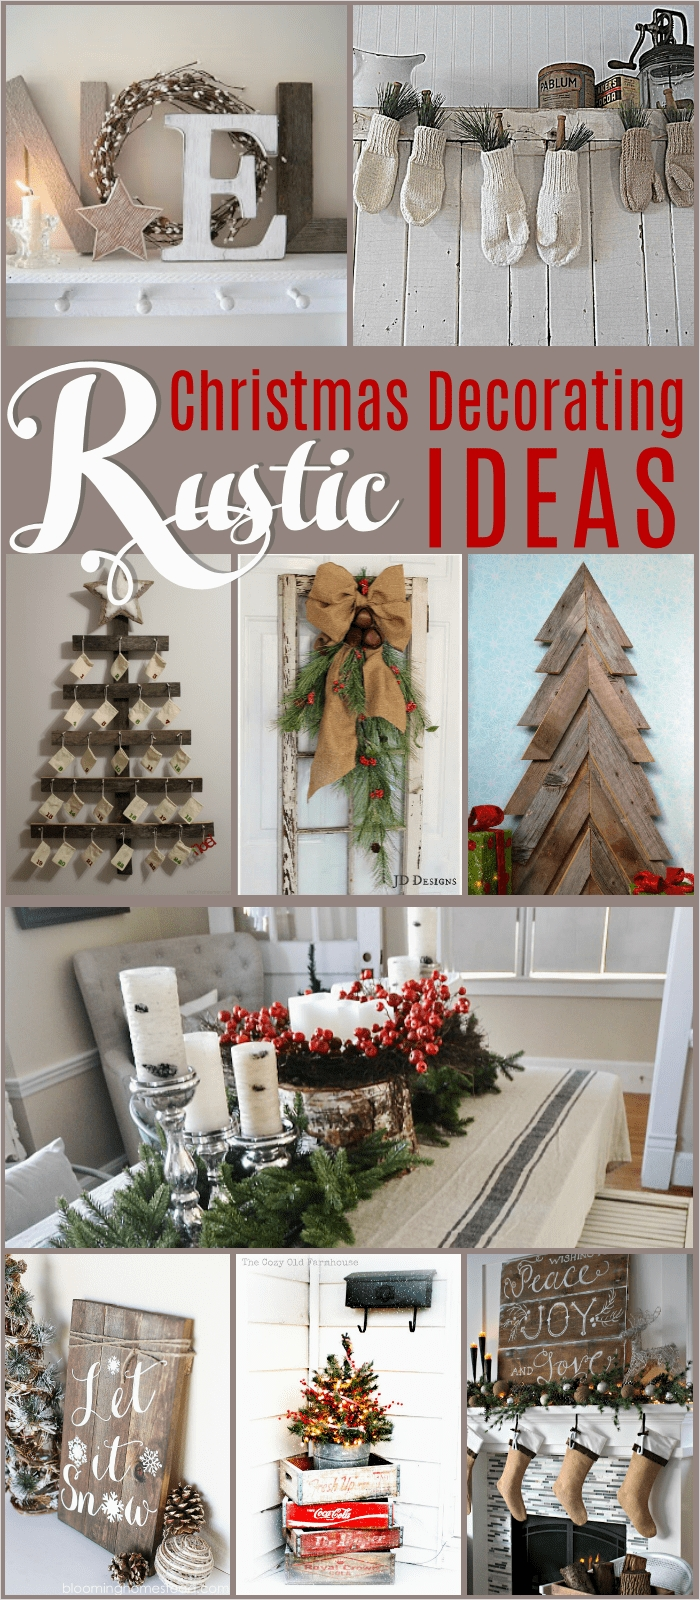 45 Diy Rustic Christmas Decorations 72 Rustic Christmas Decorating Ideas the Girl Creative 7